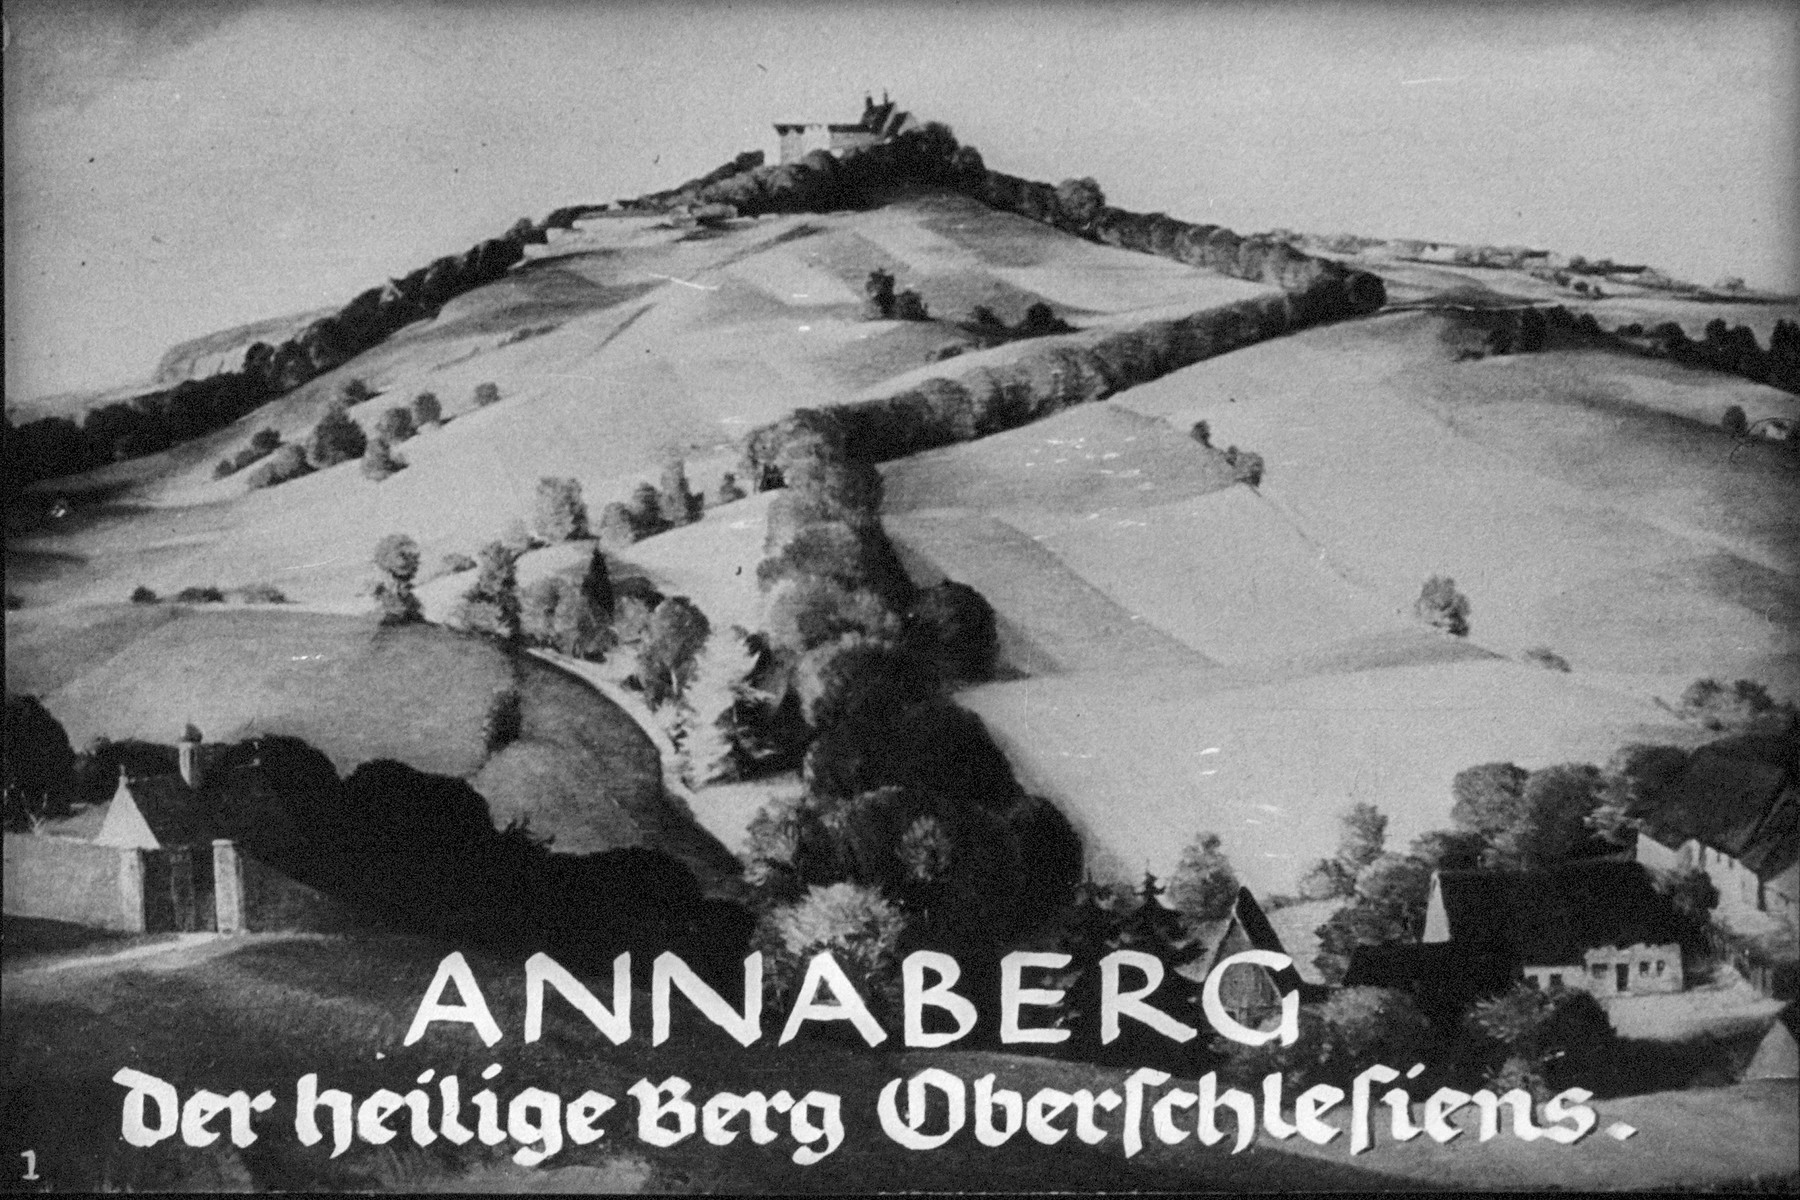 """3rd Nazi propaganda slide from Hitler Youth educational material titled """"Border Land Upper Silesia.""""  ANNABERG Der heilige Berg Oberschlesiens // ANNABERG The Holy Mountain of Upper Silesia."""